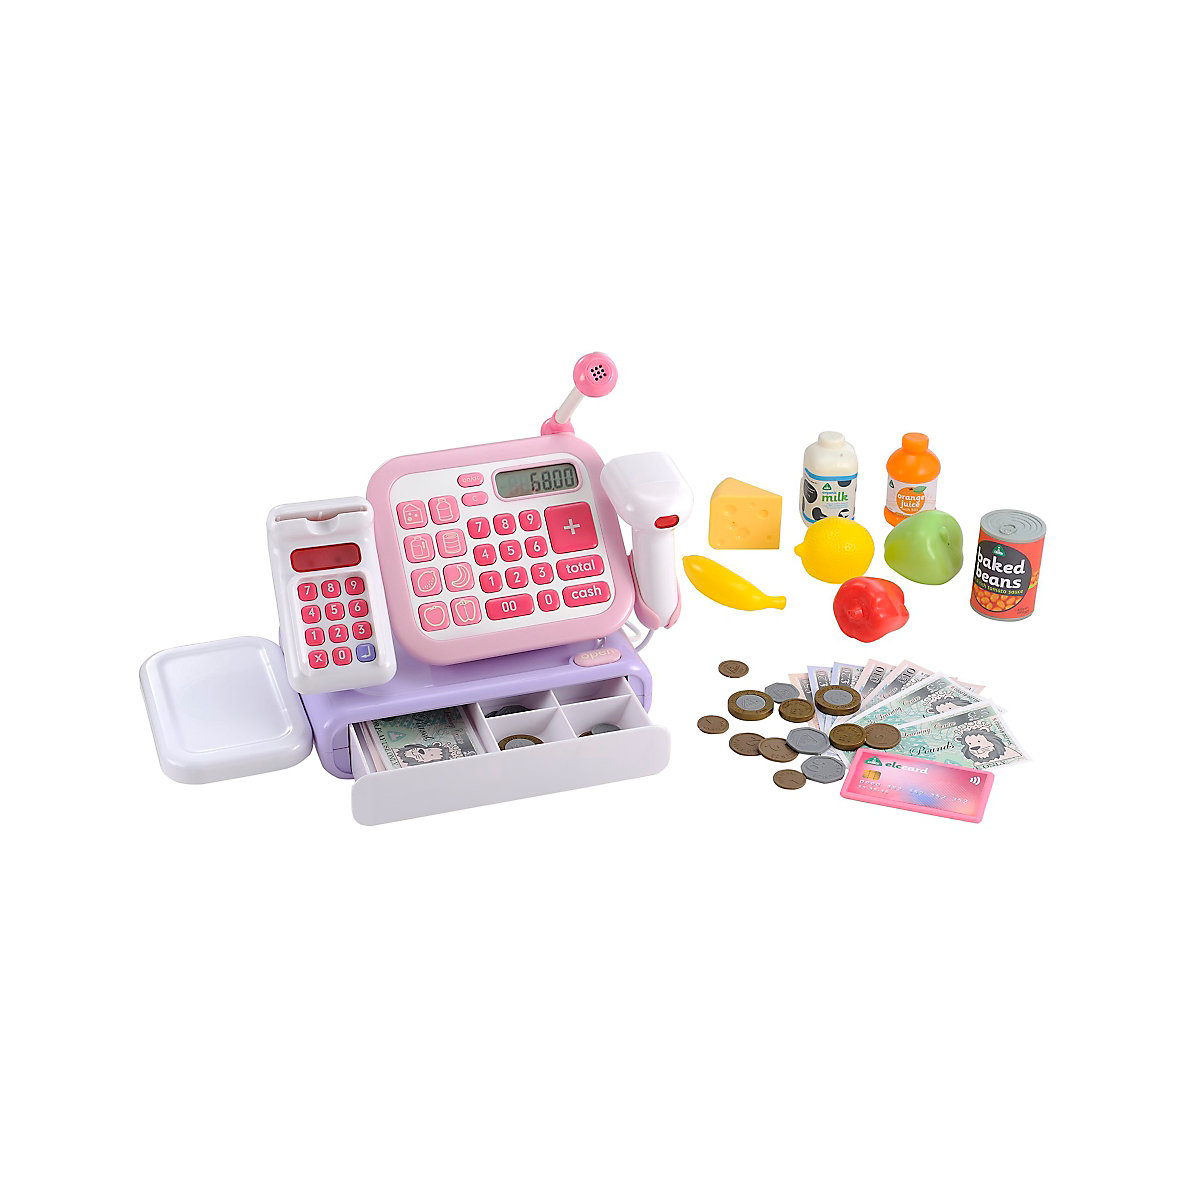 New ELC Girl Cash Register - Pink Toy From 3 years - Dressing Up Gifts